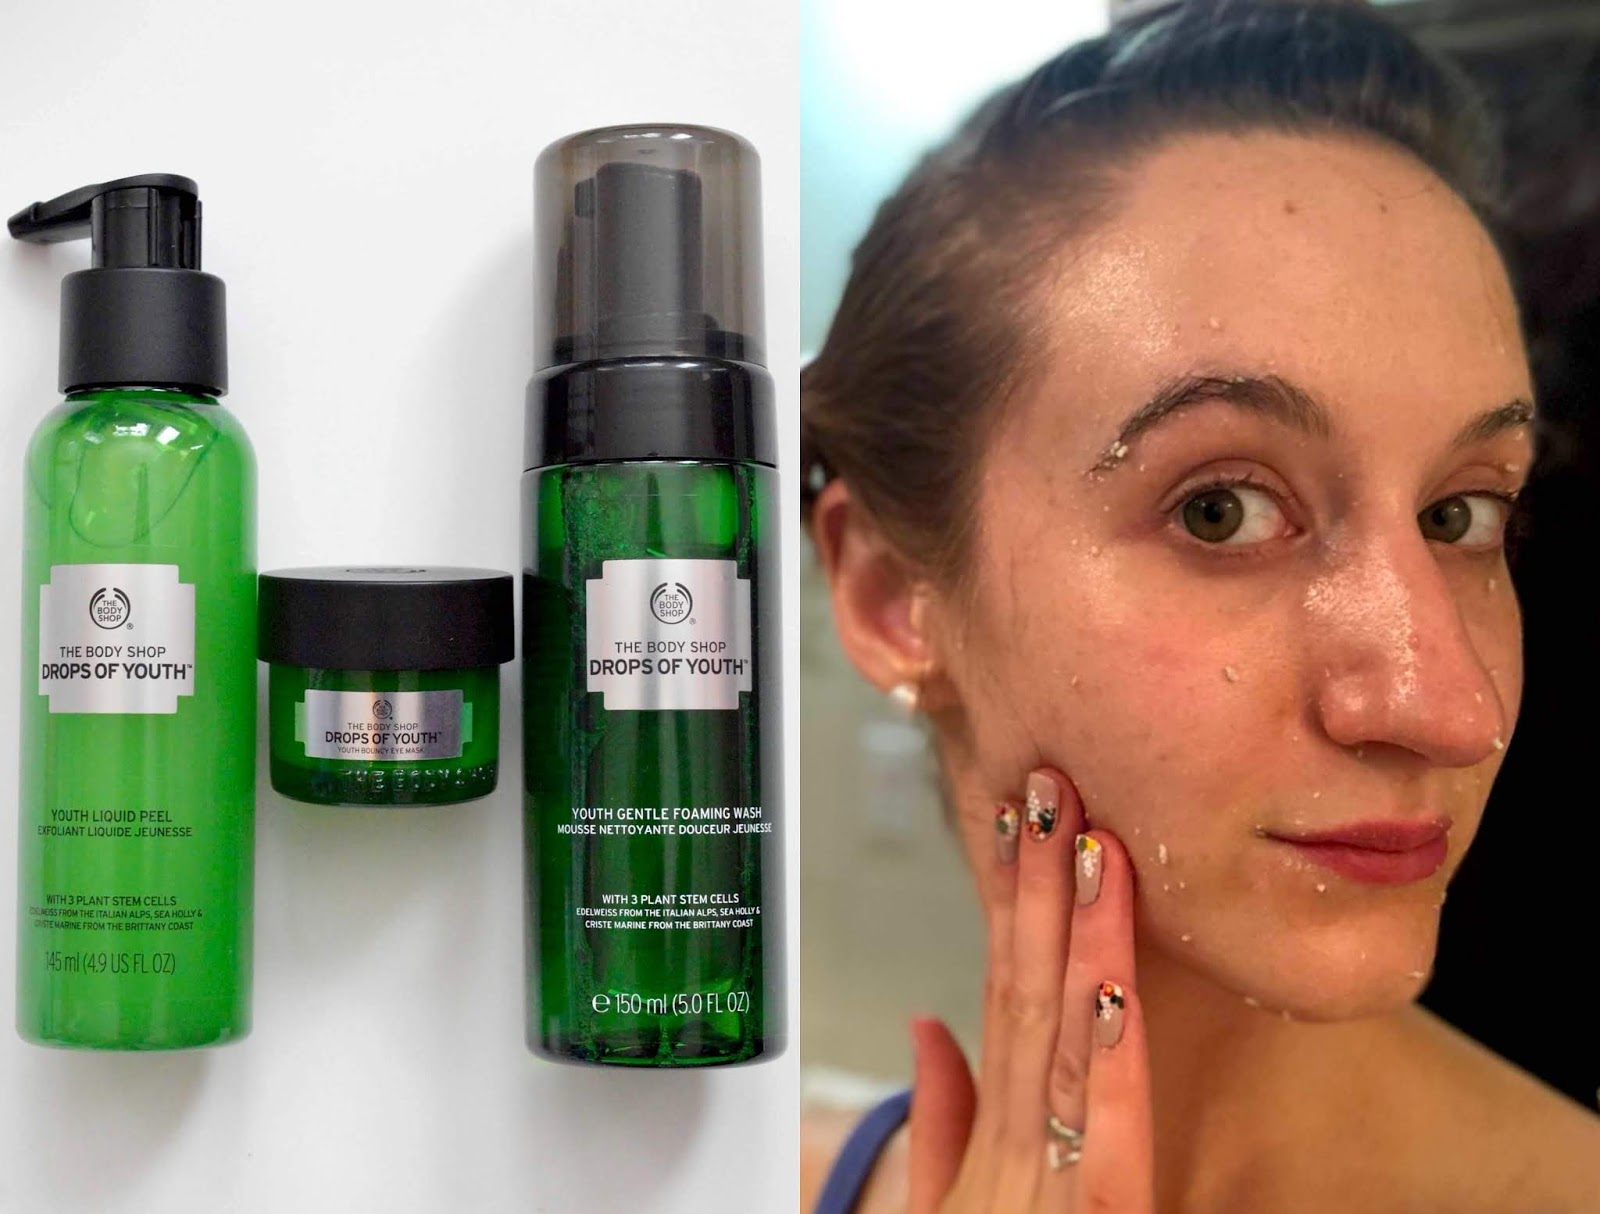 Drops of Youth Peel